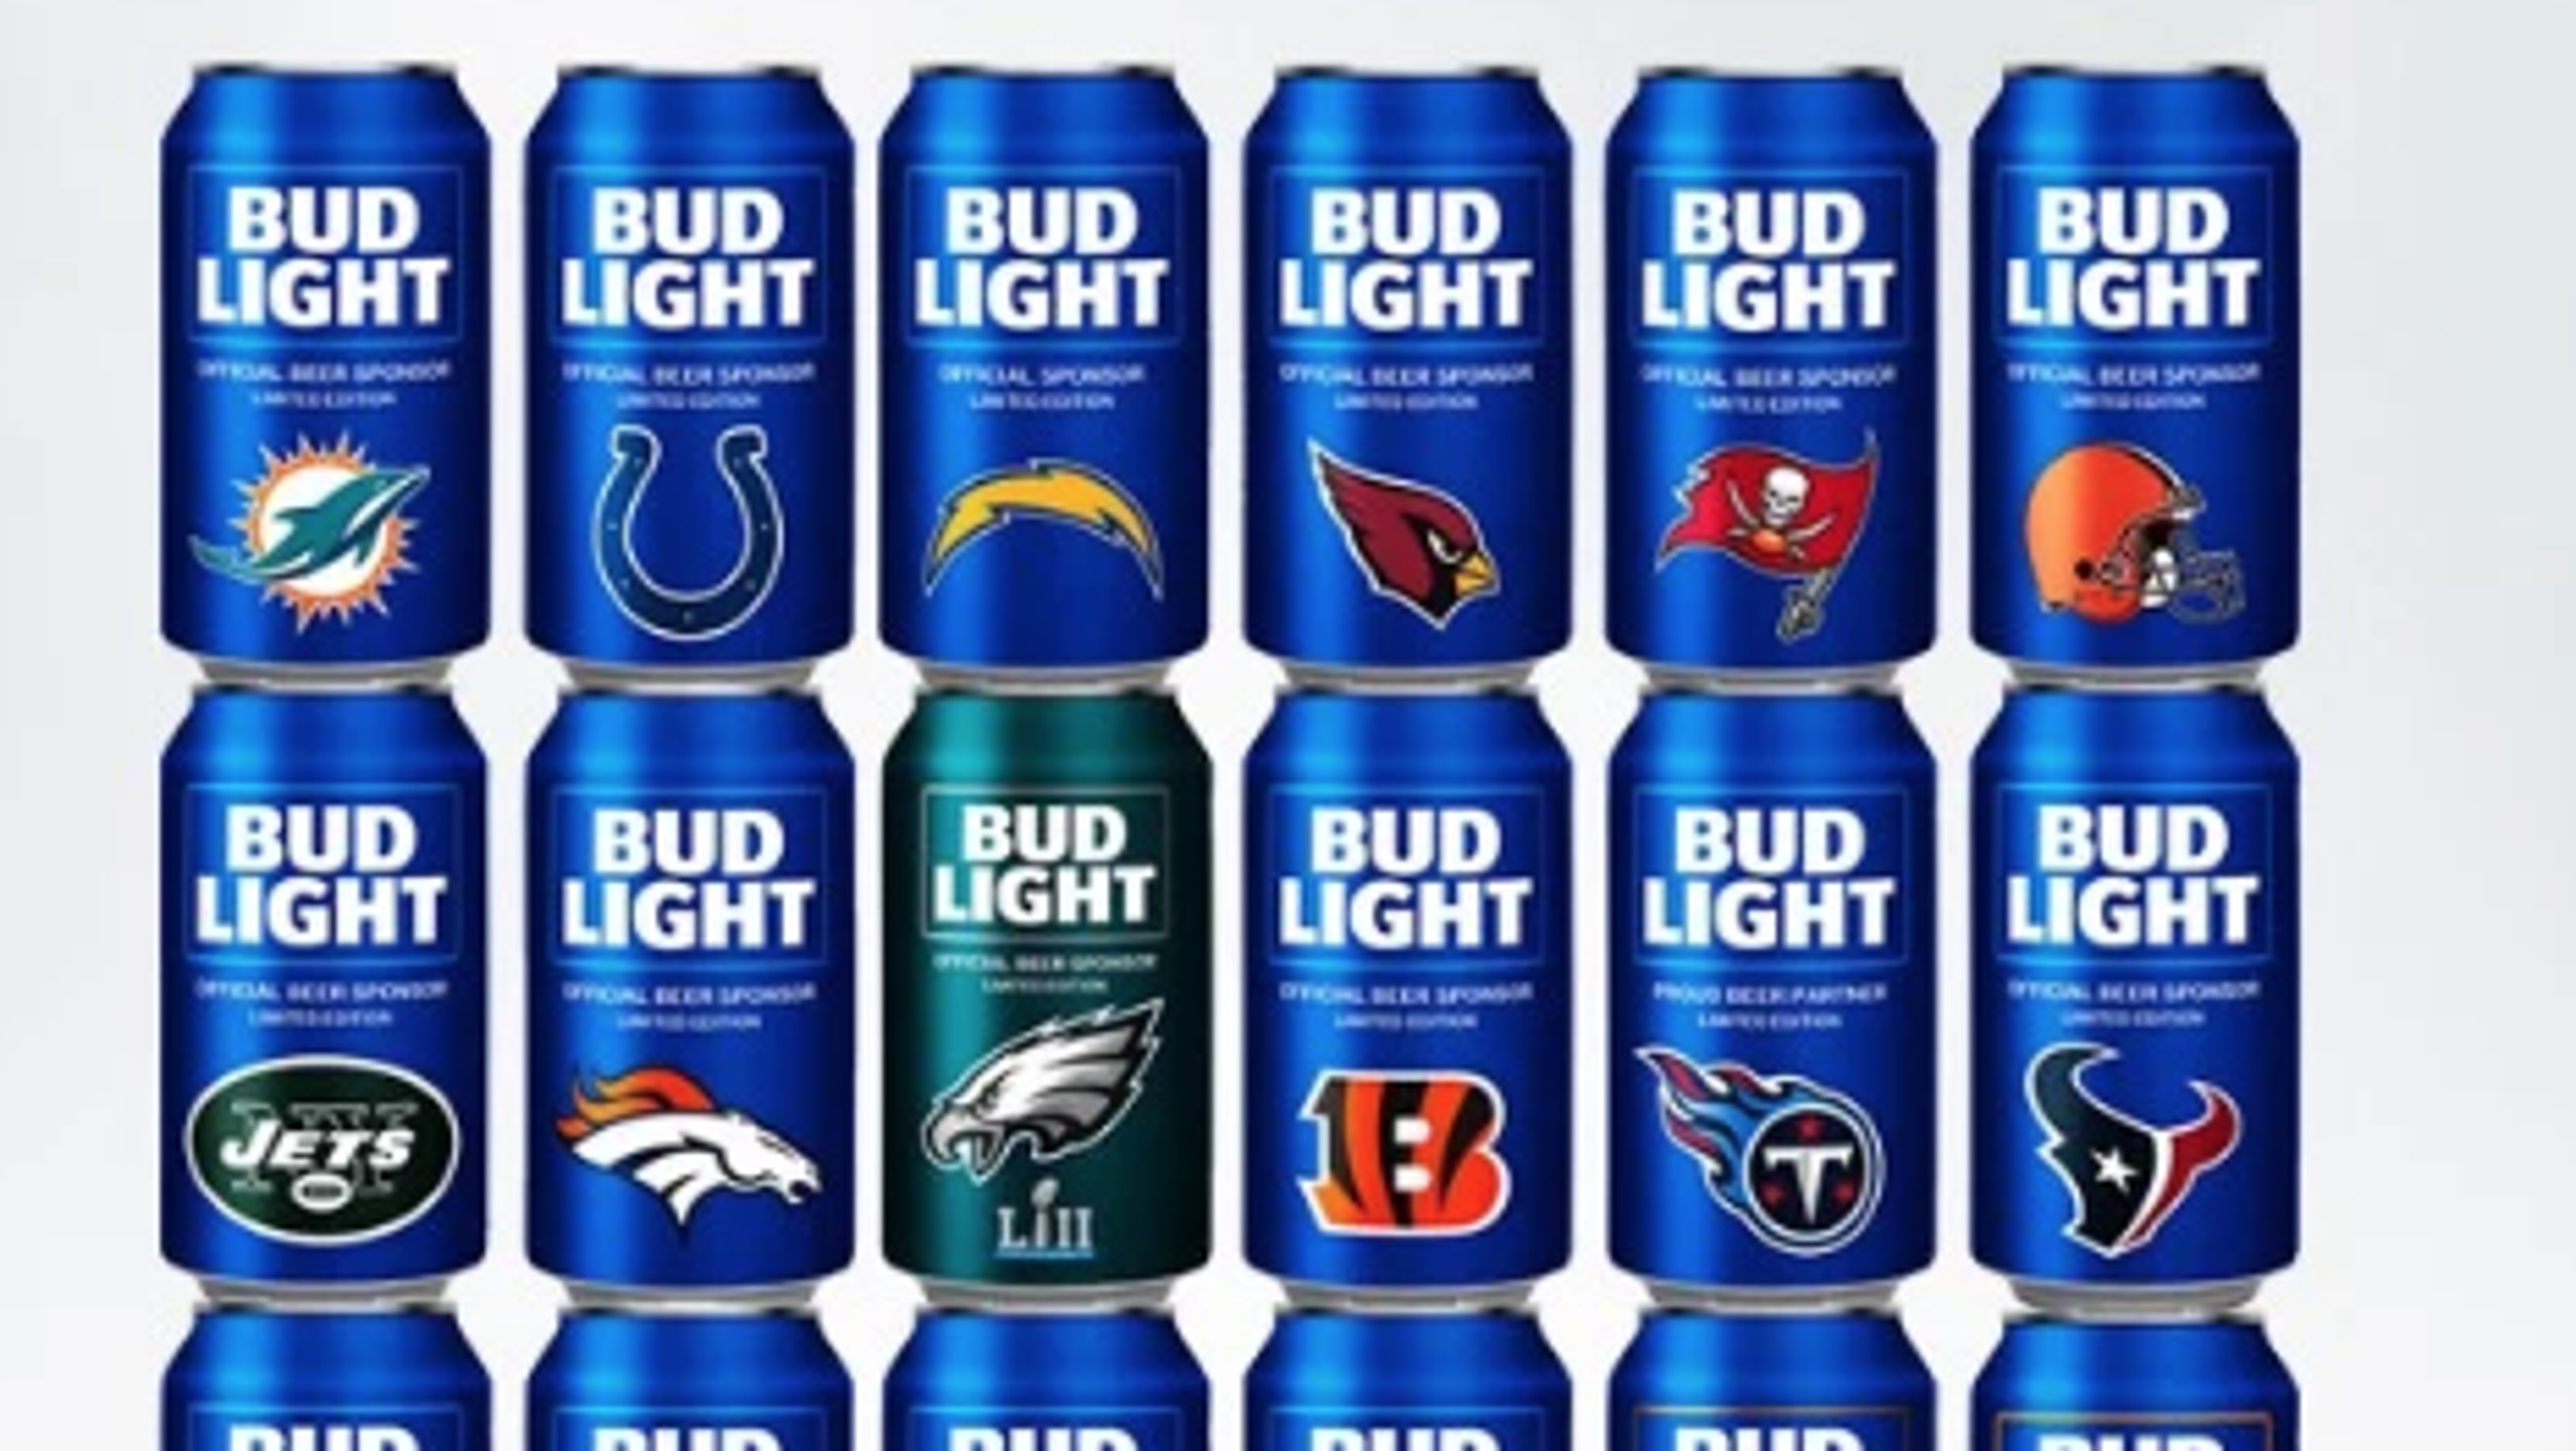 8a96e47f2 2018 NFL Bud Light Cans: 28 teams have special beer cans for season